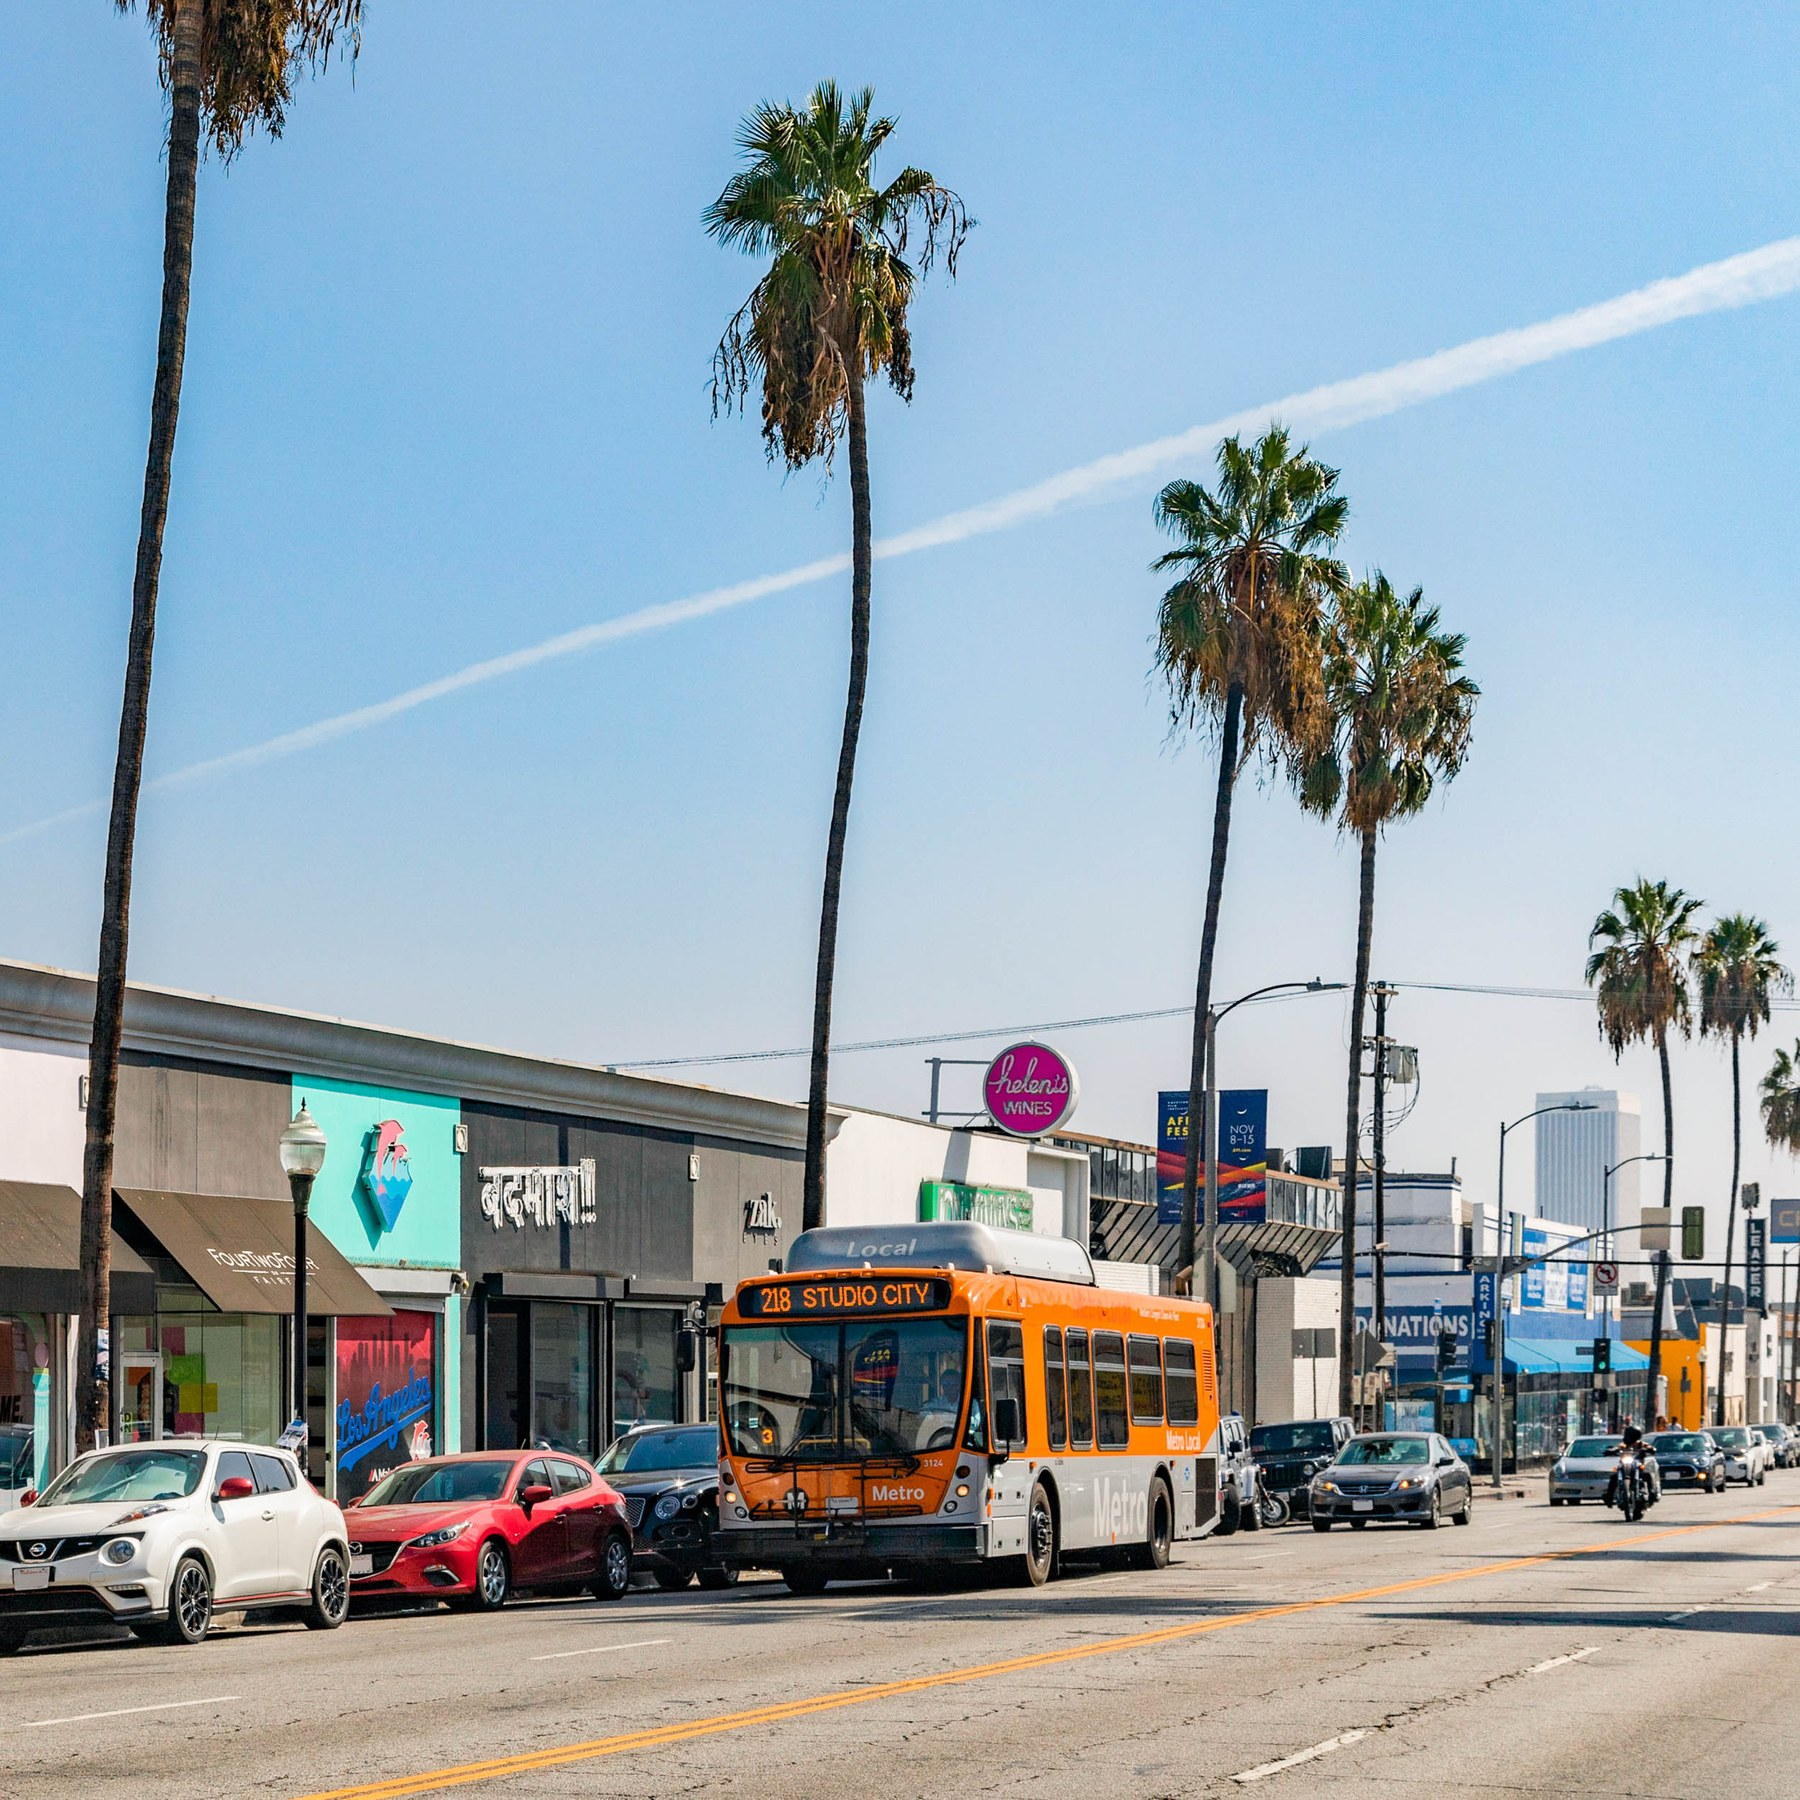 Apartments For Sale In Los Angeles Downtown: Mid City West, Los Angeles CA - Neighborhood Guide